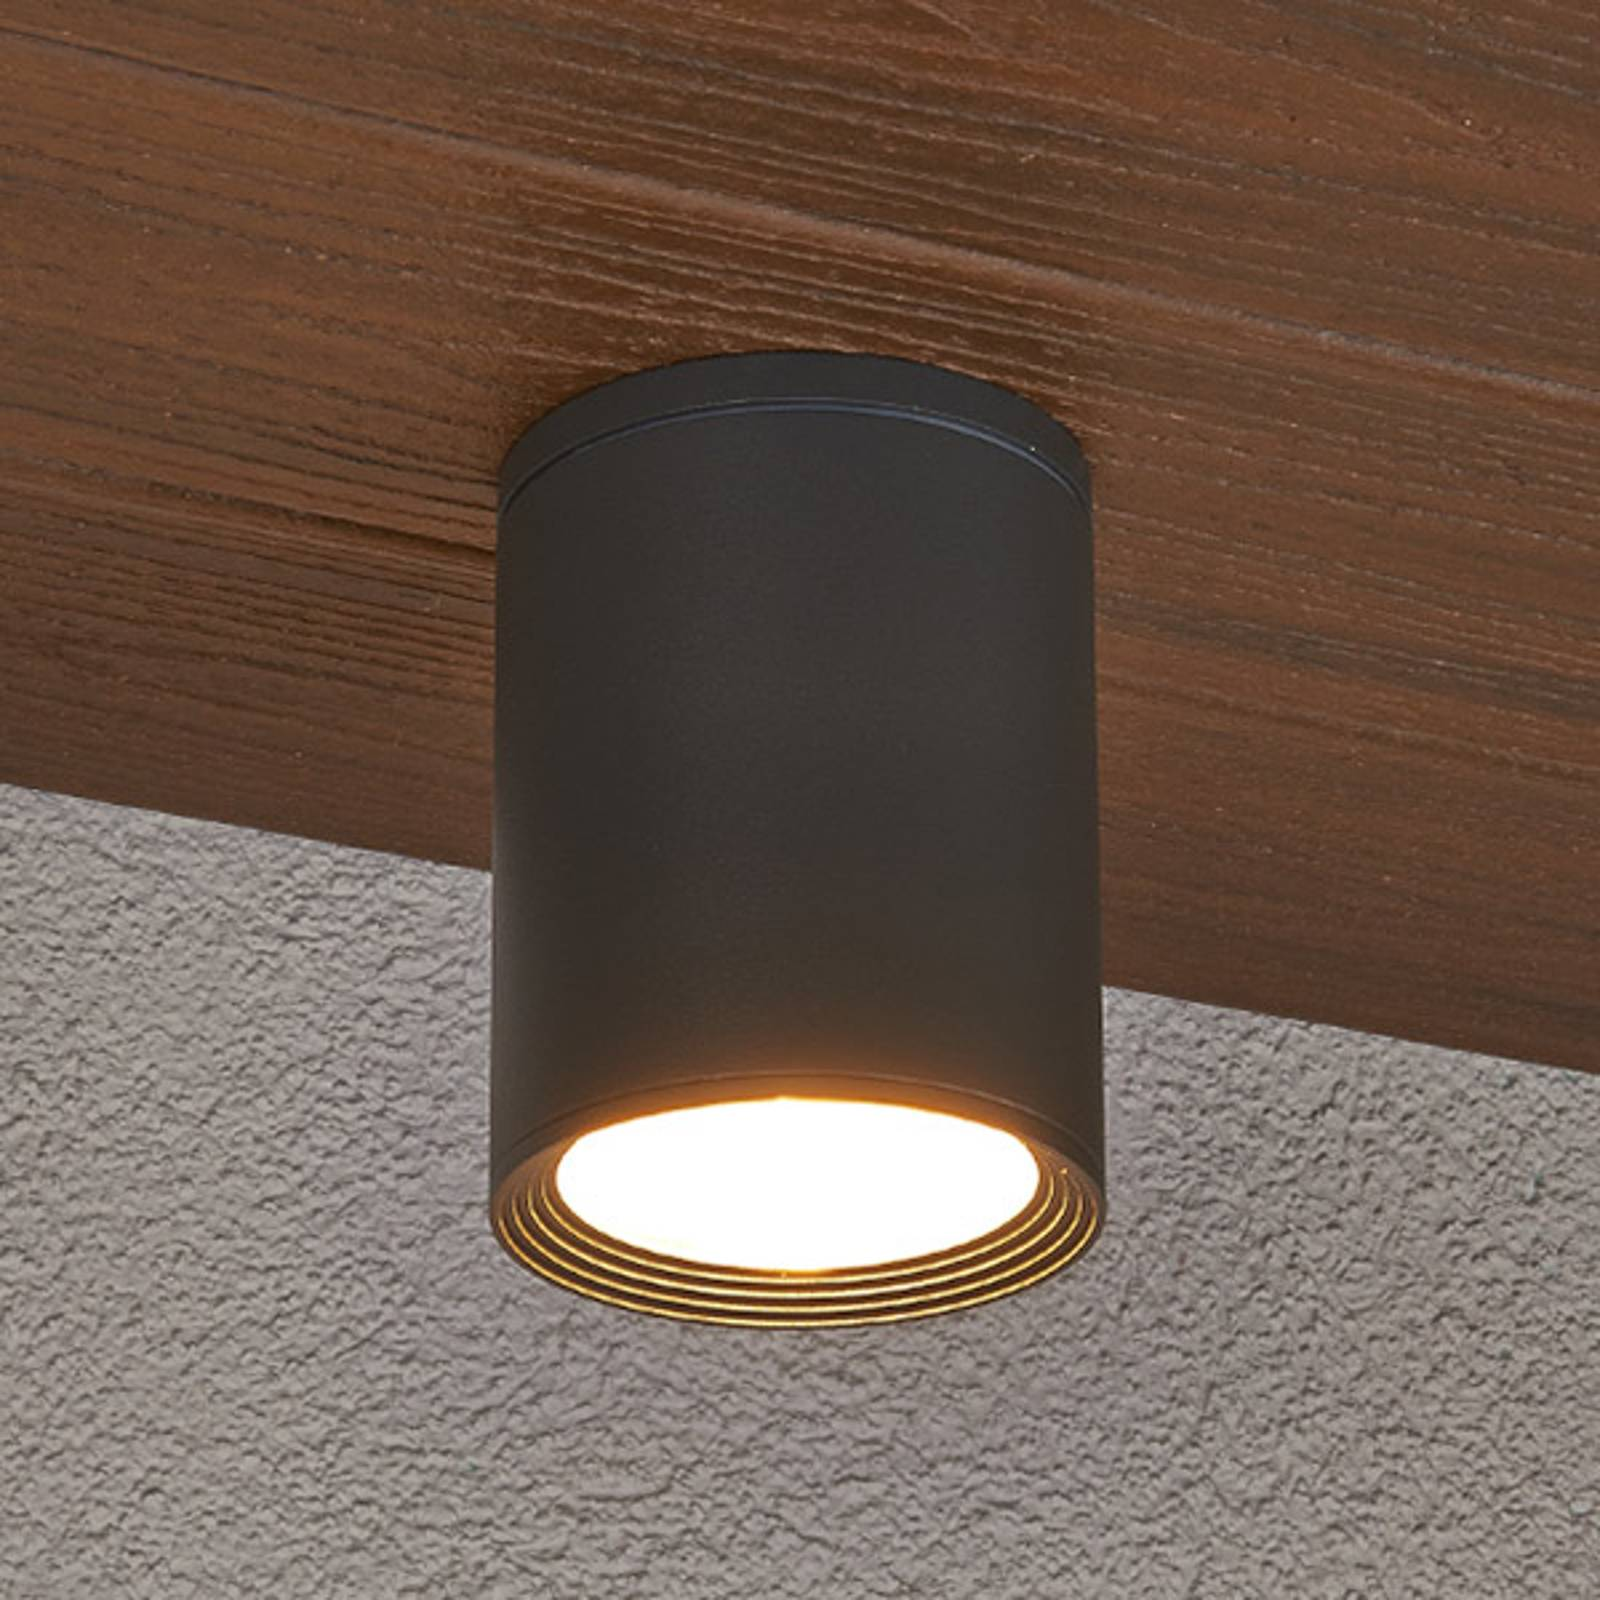 Minna dark grey ceiling light for outdoors from Lucande